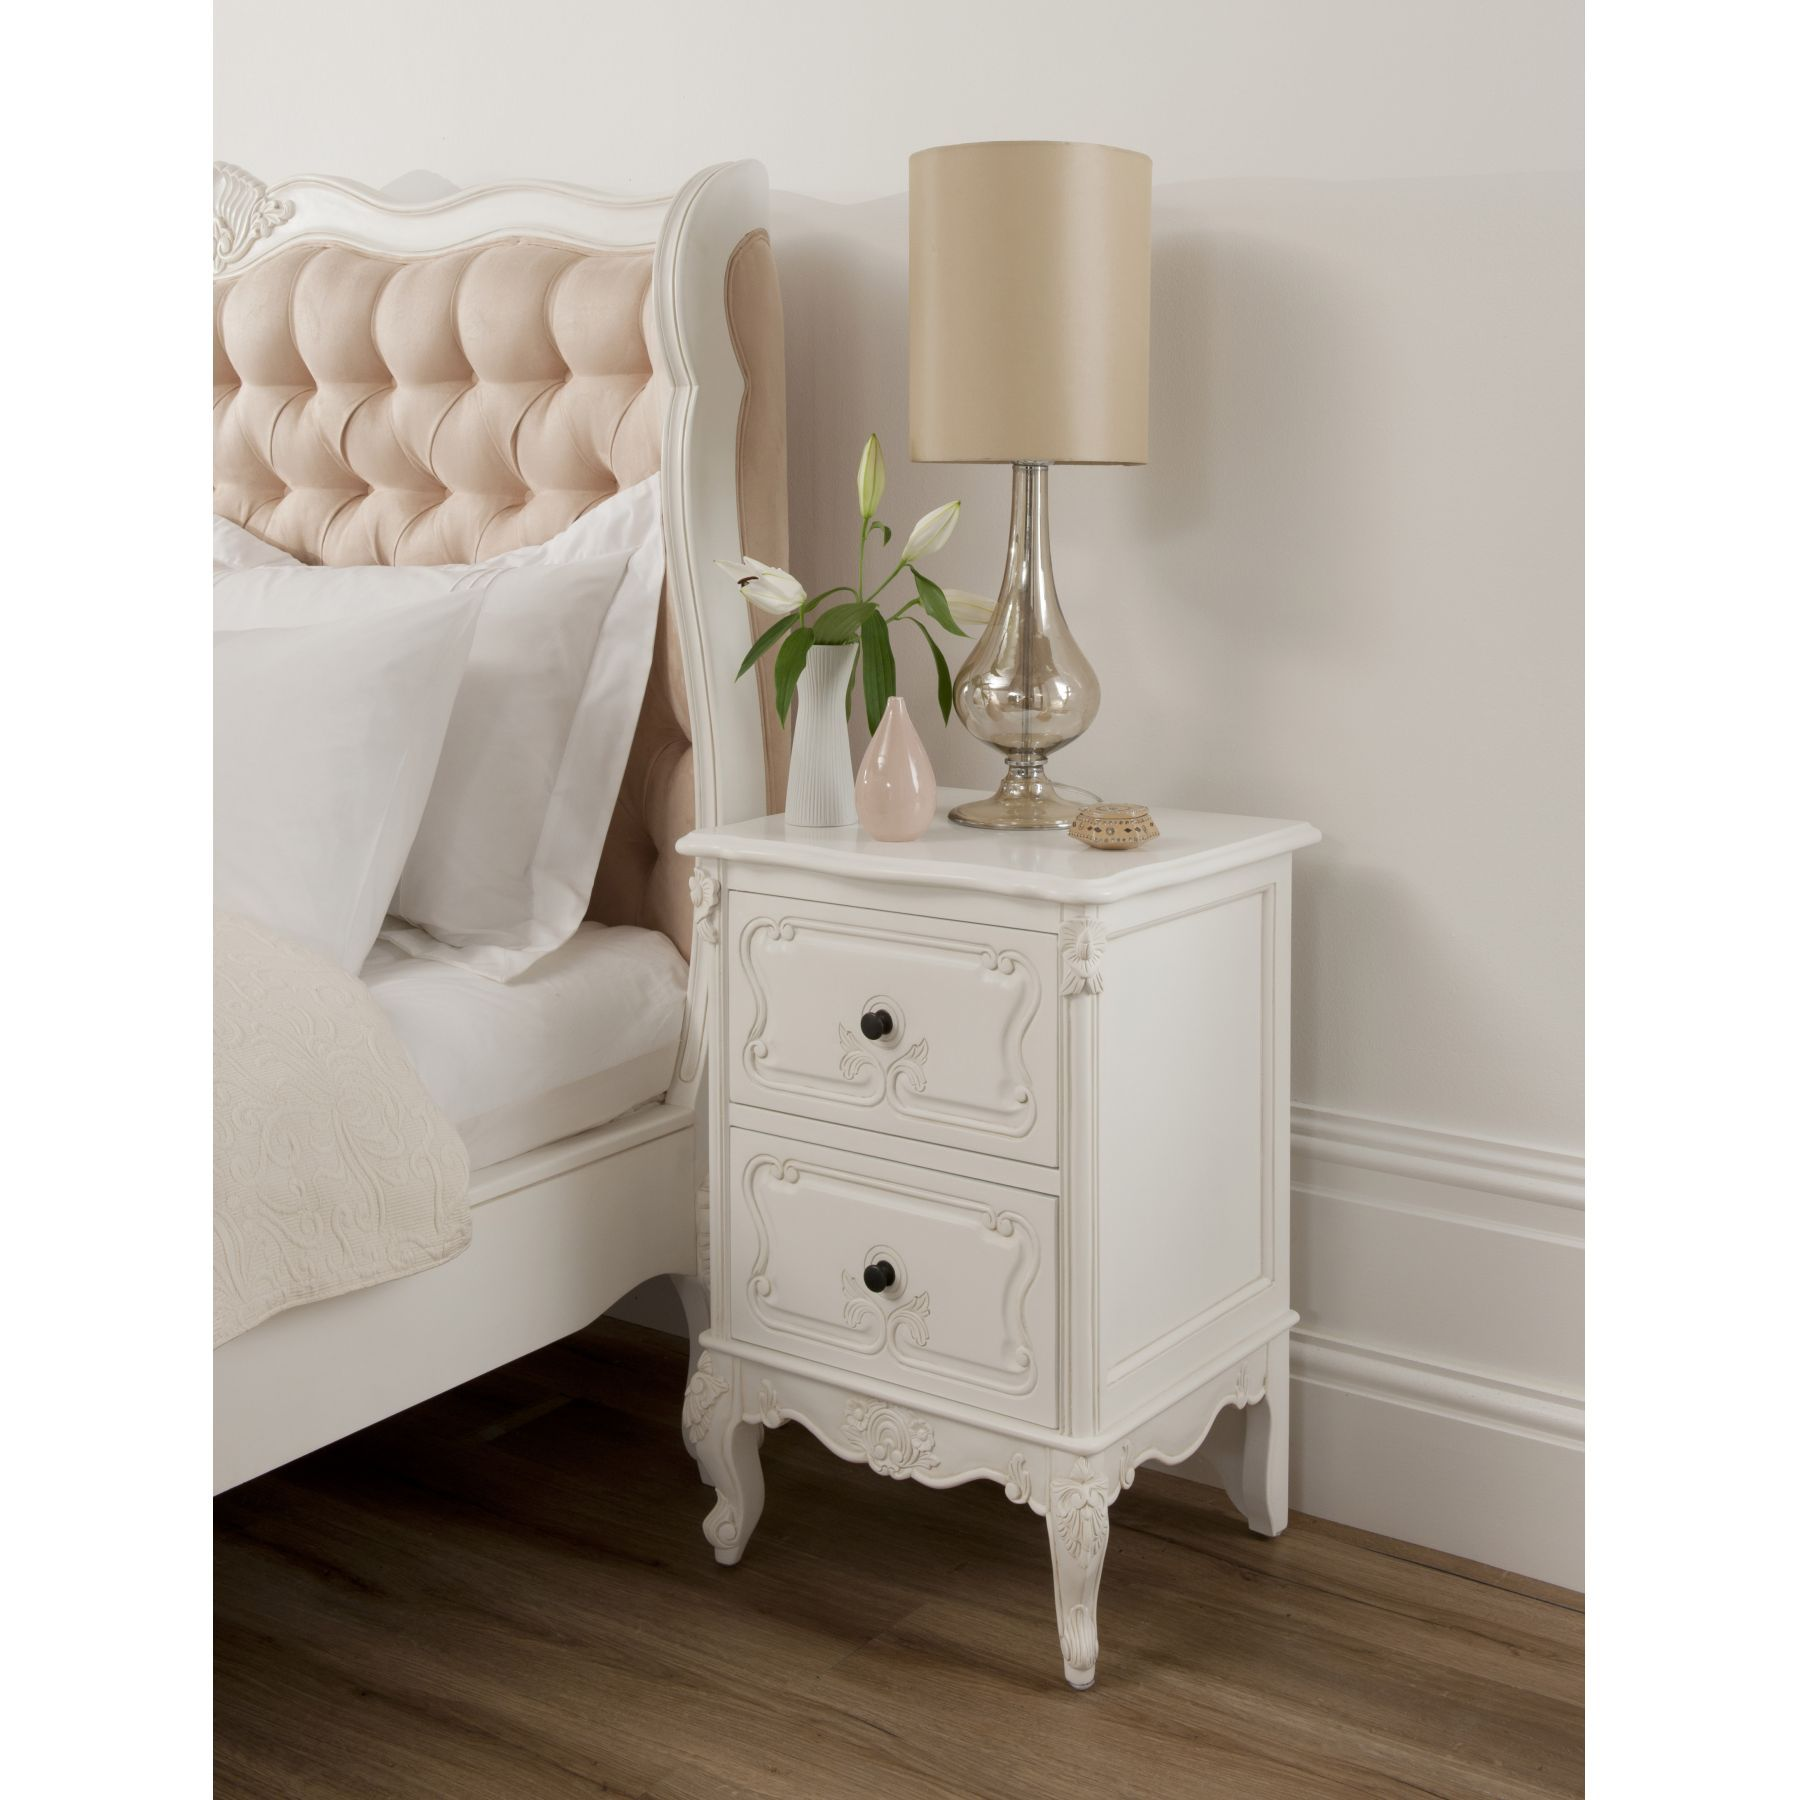 French Bedside Tables Can Be The Best Idea For A Classic And Convenient Table Choice